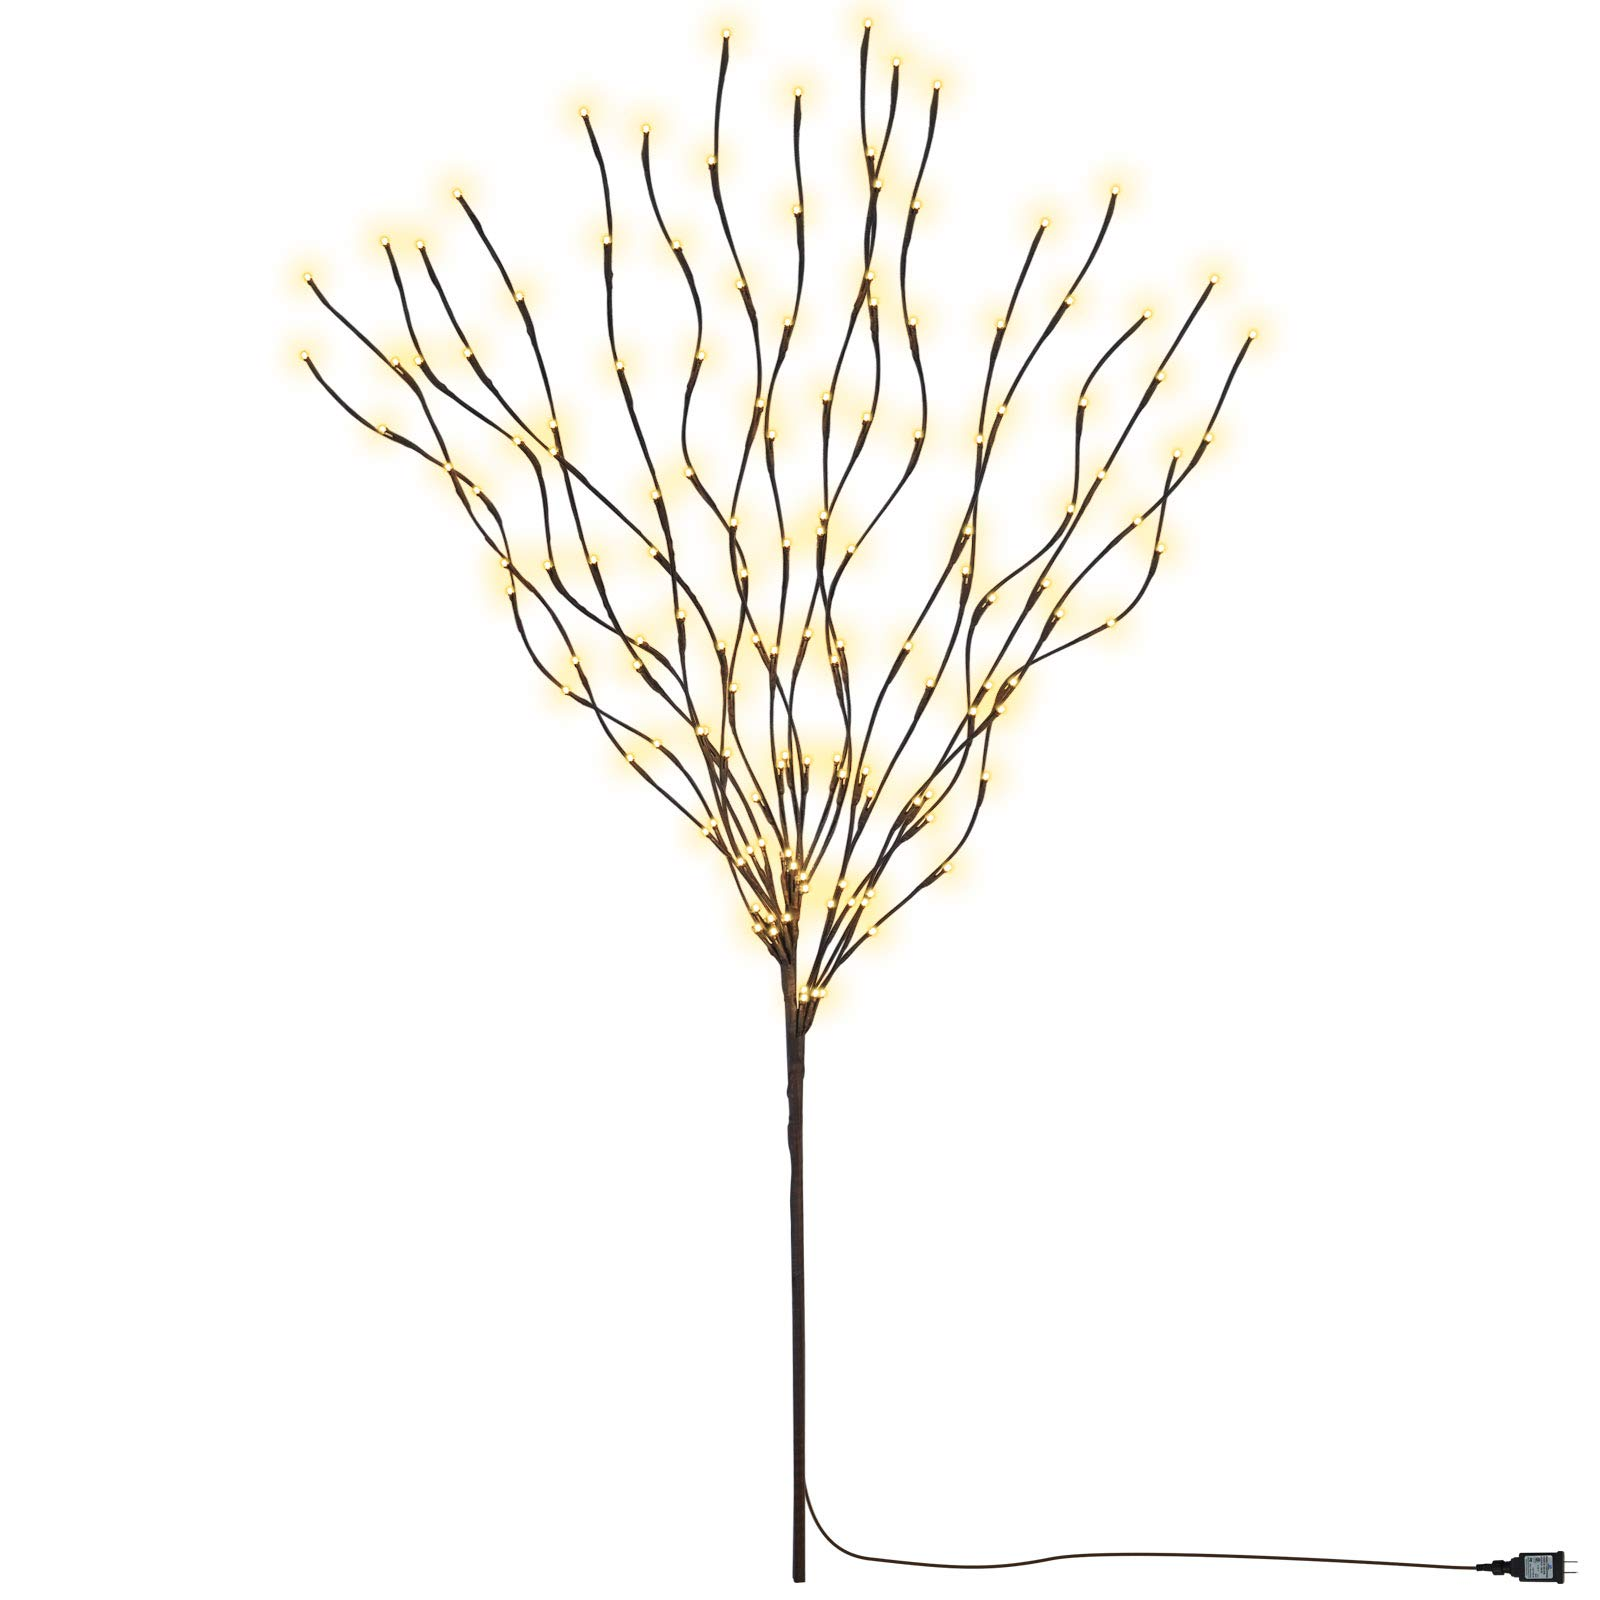 BenefitUSA 50 Inch Electric/Corded Willow Branch with 144 Incandescent Lights